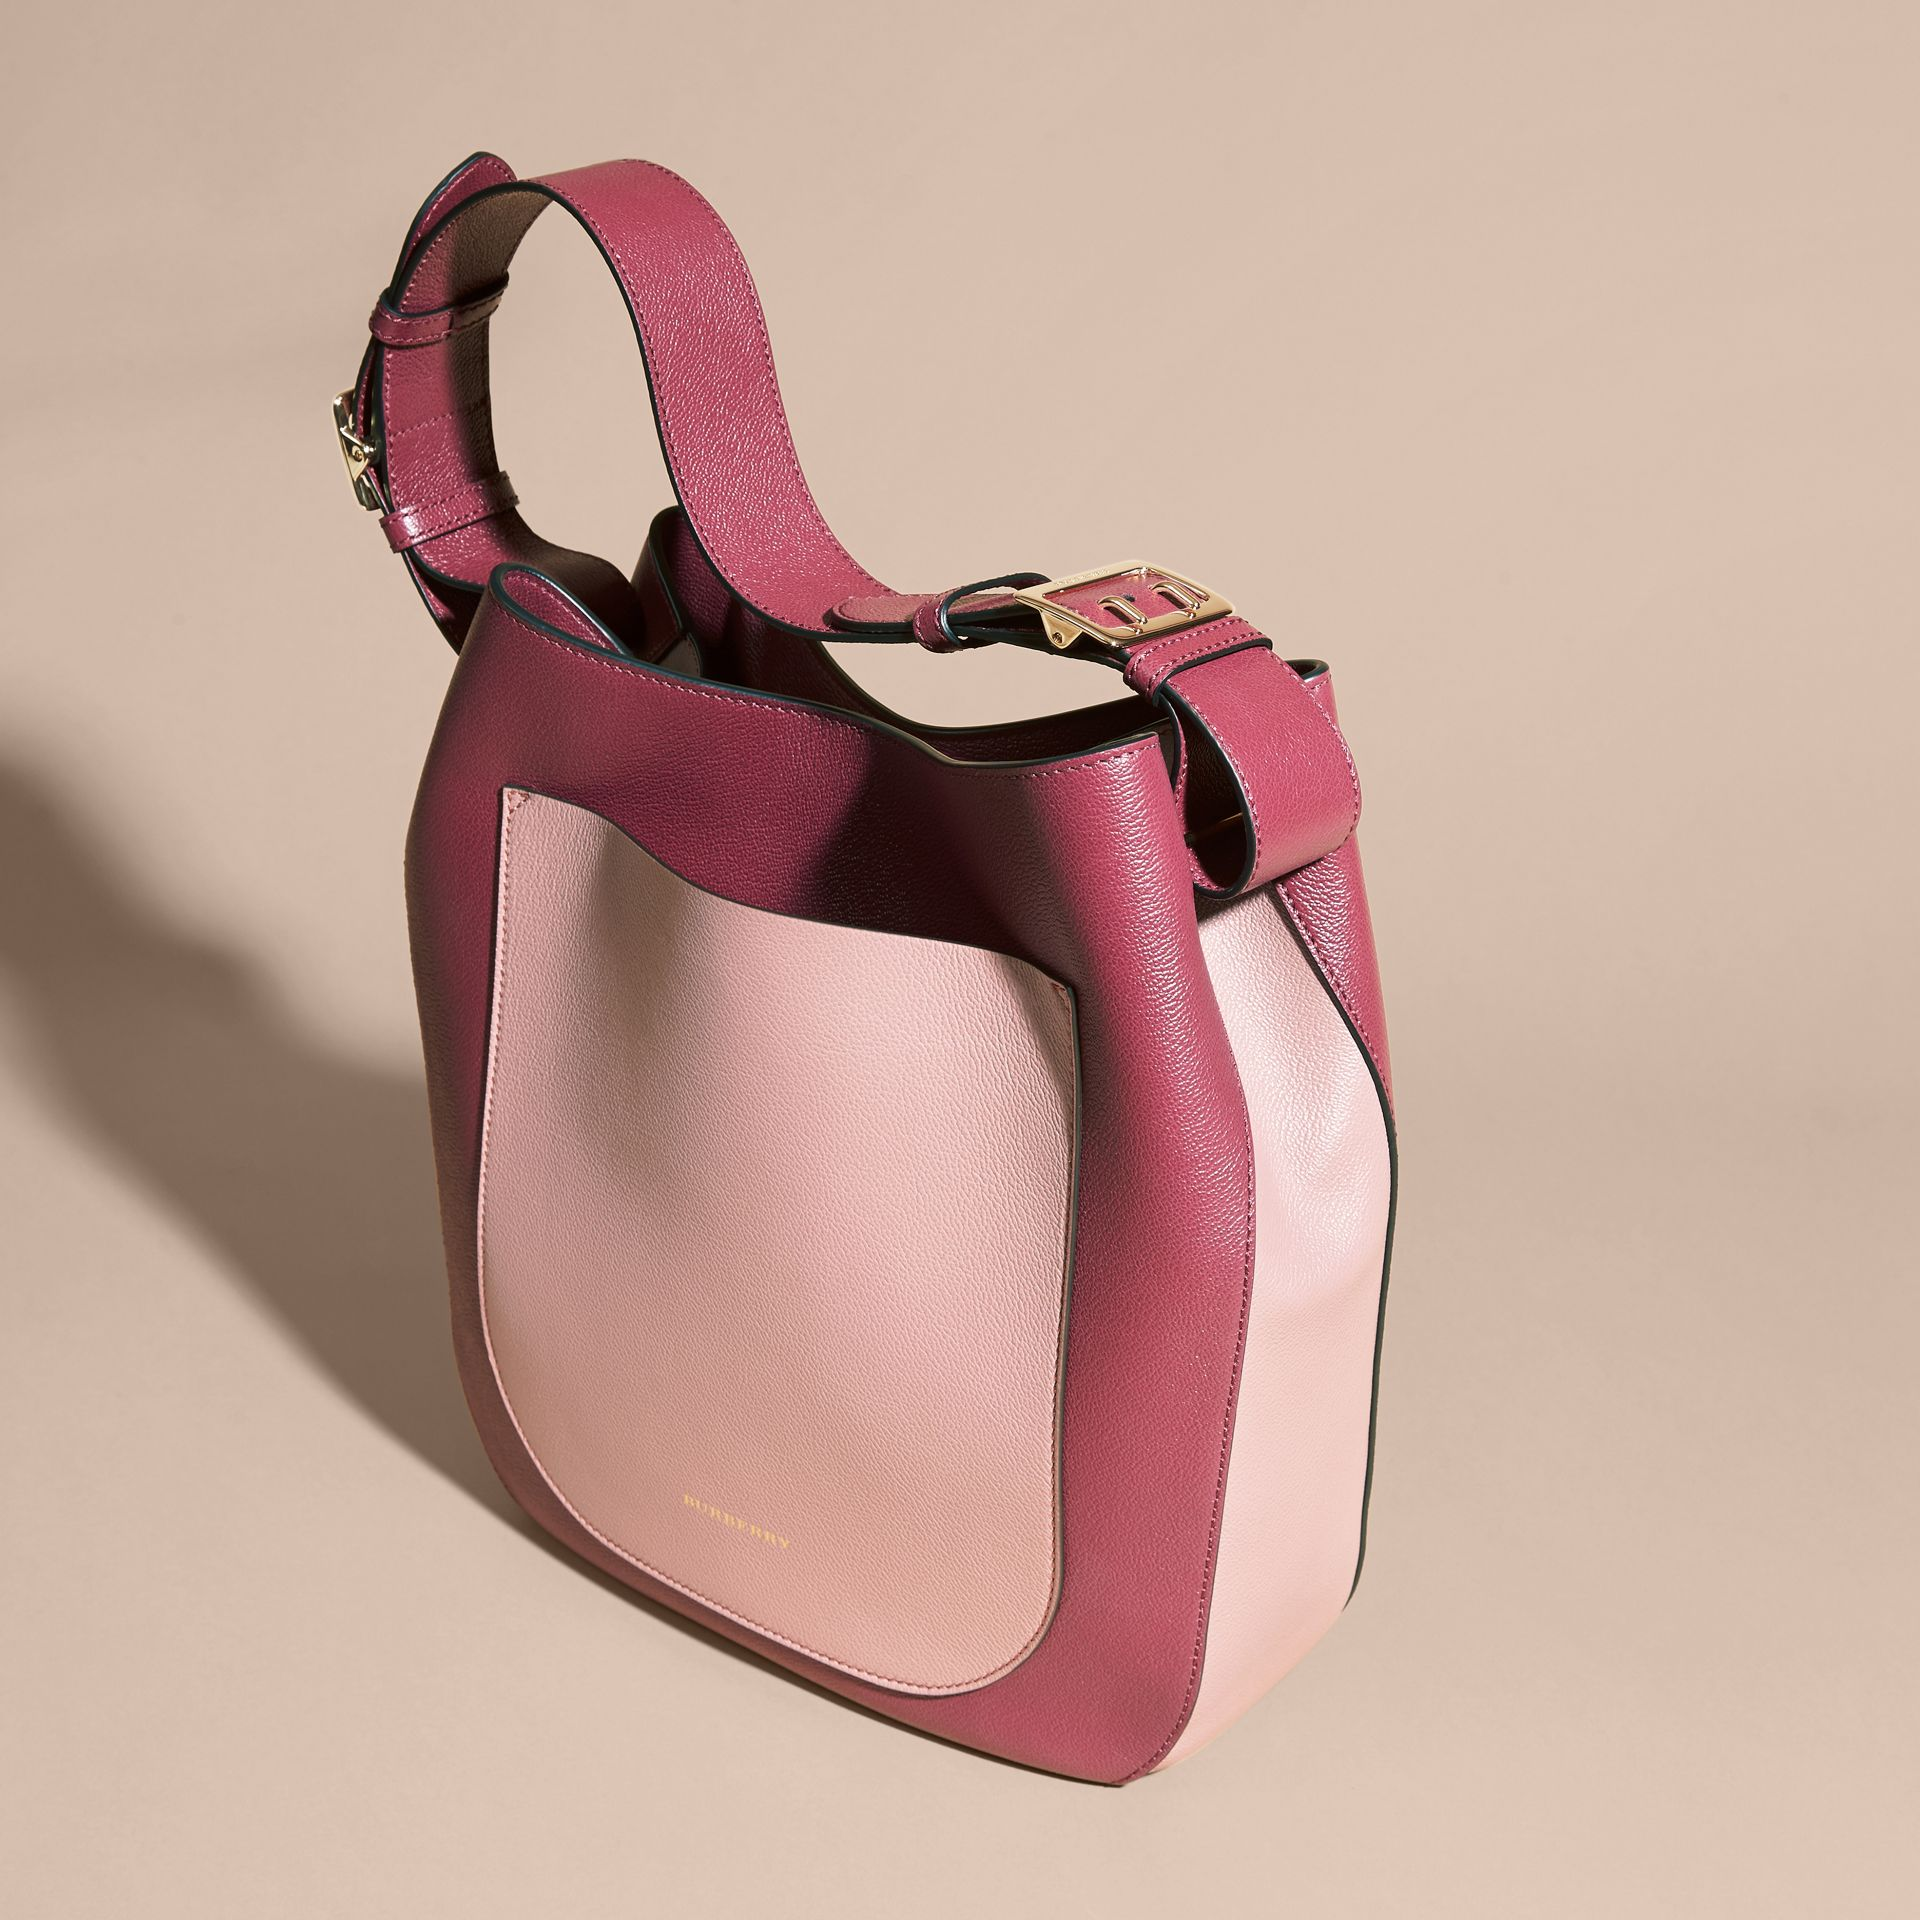 Textured Leather Shoulder Bag in Dark Plum/ Dusty Pink - gallery image 7